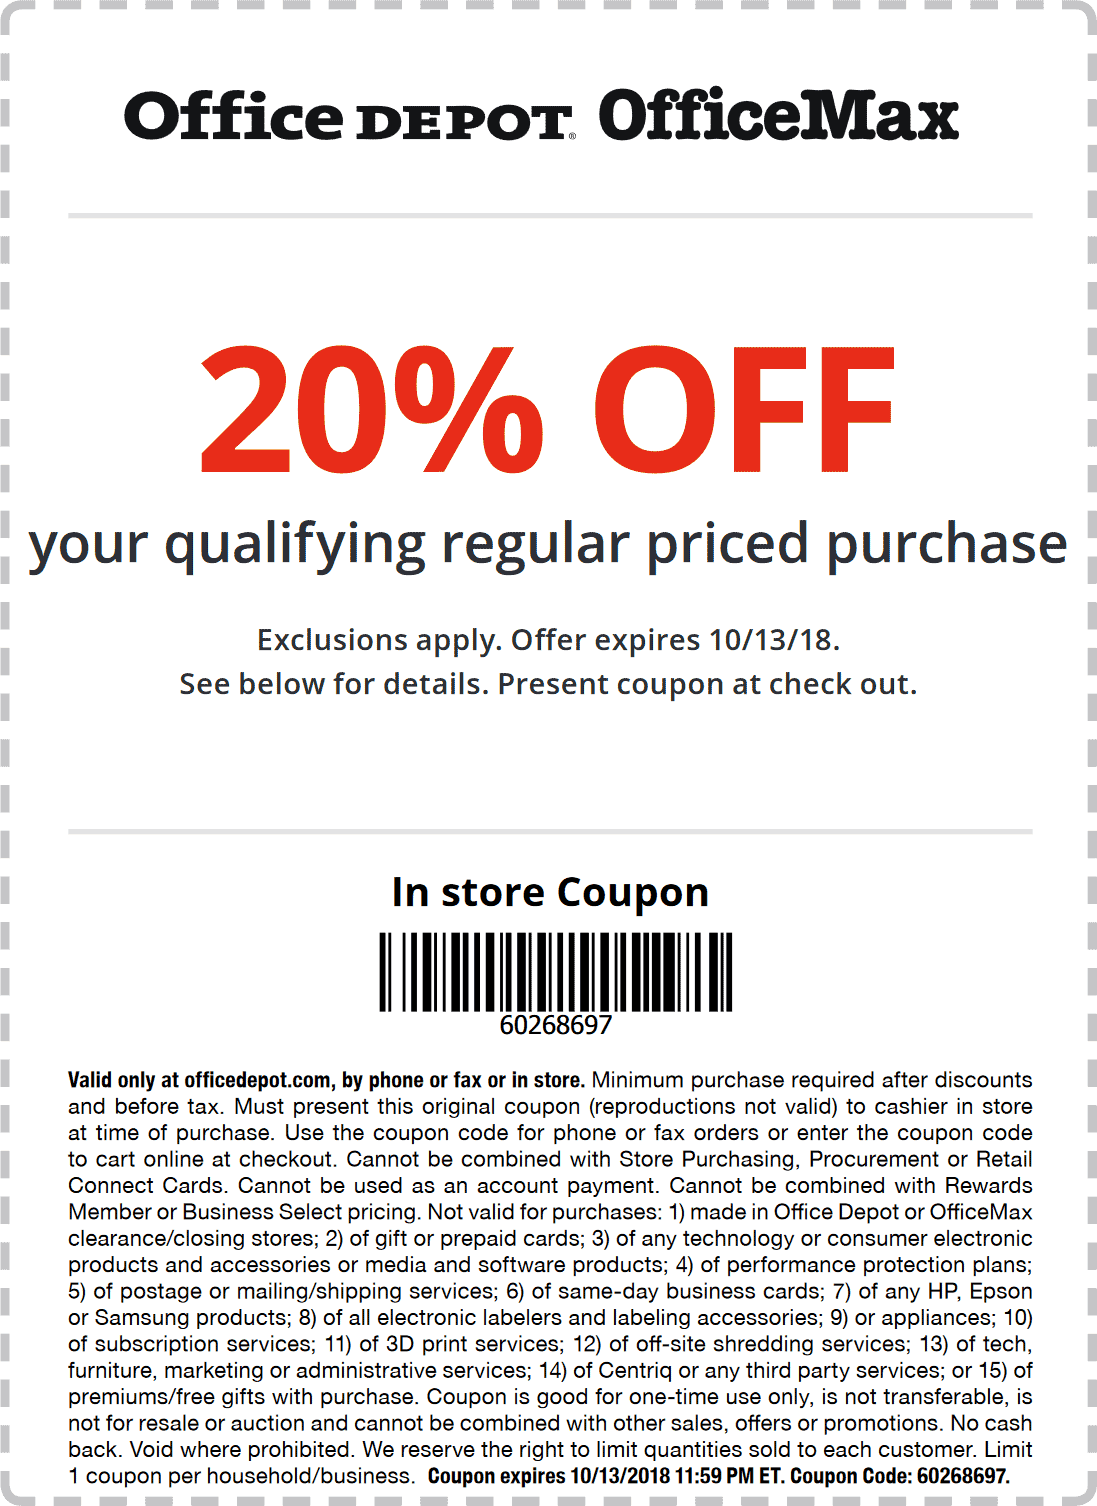 Office Depot Coupon July 2019 20% off at OfficeMax & Office Depot, or online via promo code 60268697